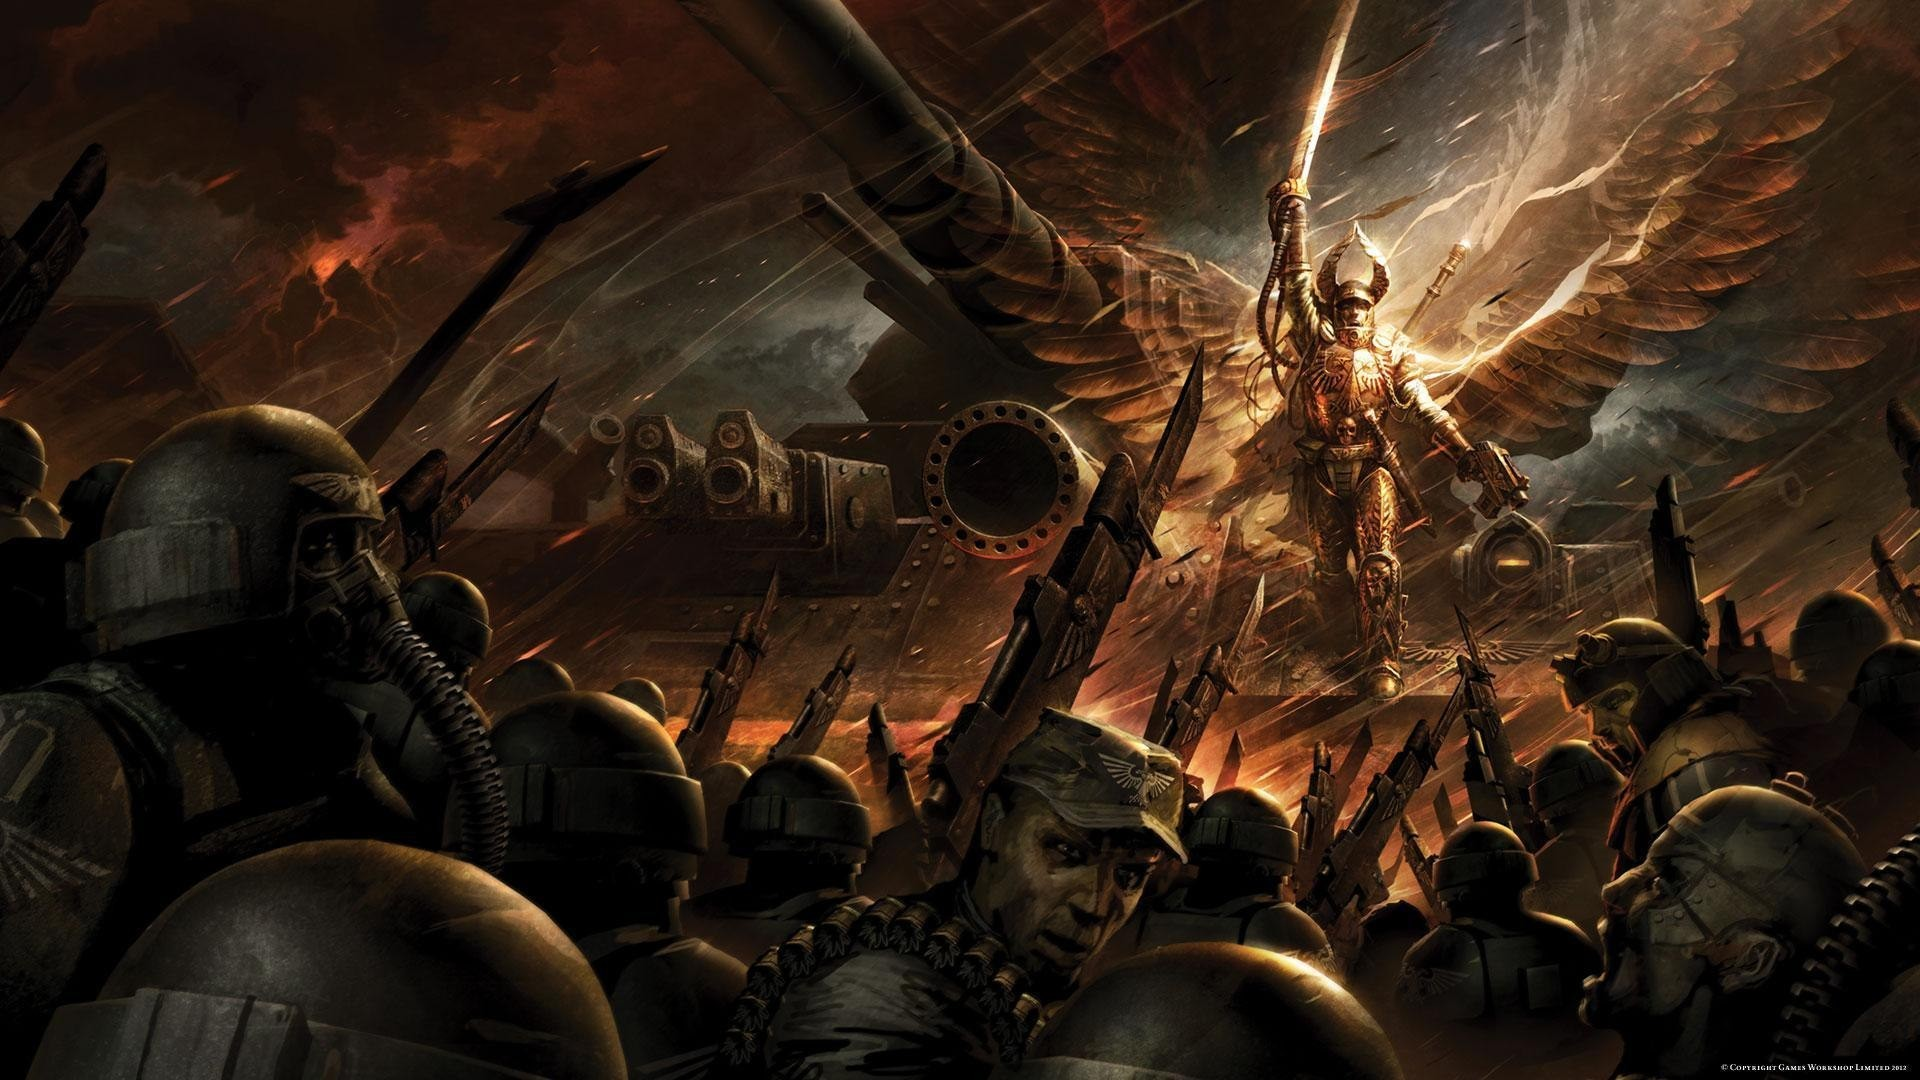 1920x1080 Explore Warhammer 40000, Solar, and more! Imperial Guard wallpaper